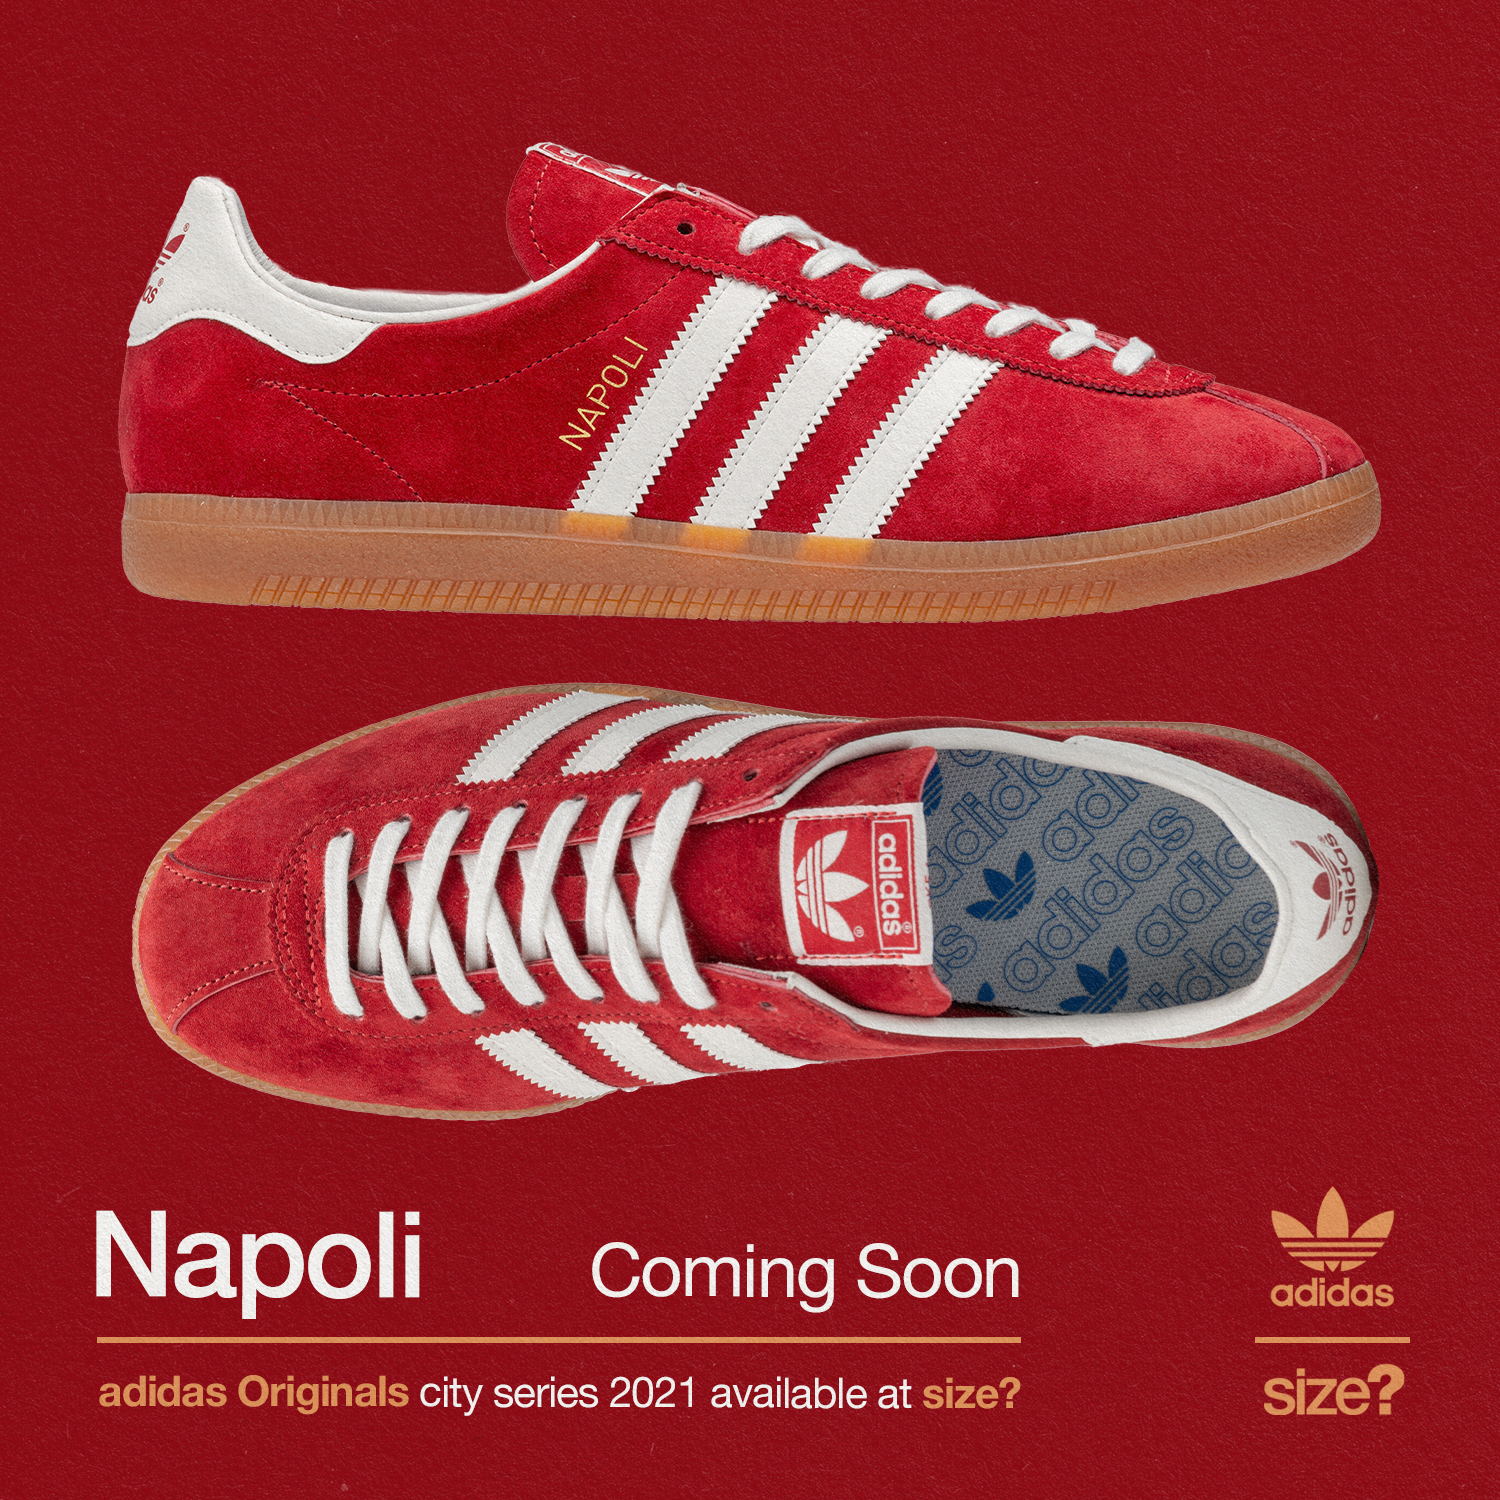 Our exclusive adidas Originals Napoli joins the City Series